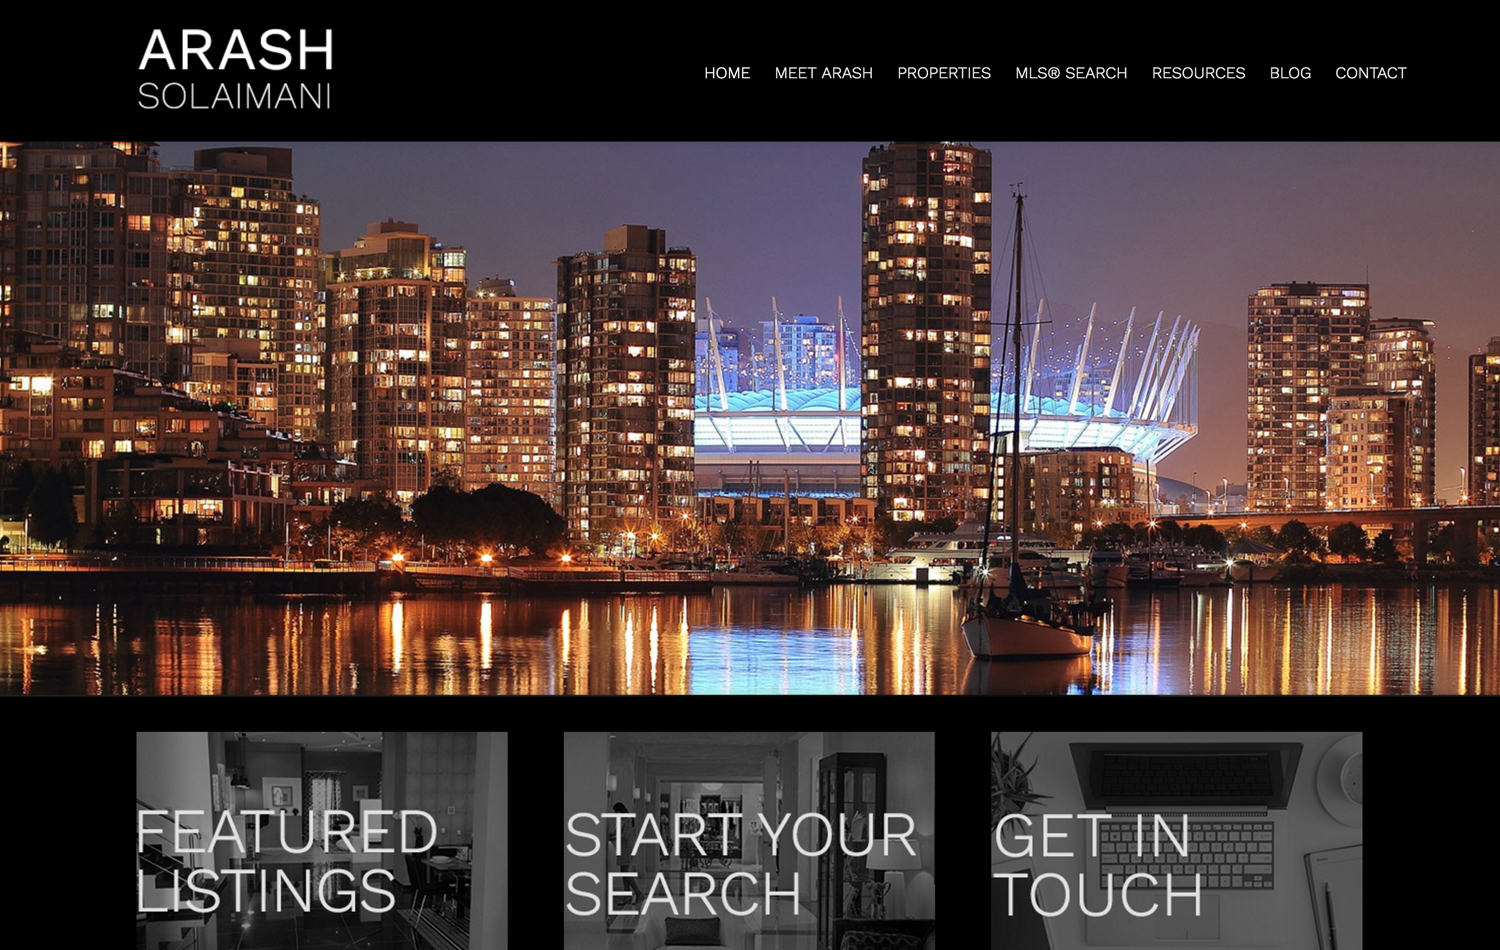 arash solaimani real estate website screenshot